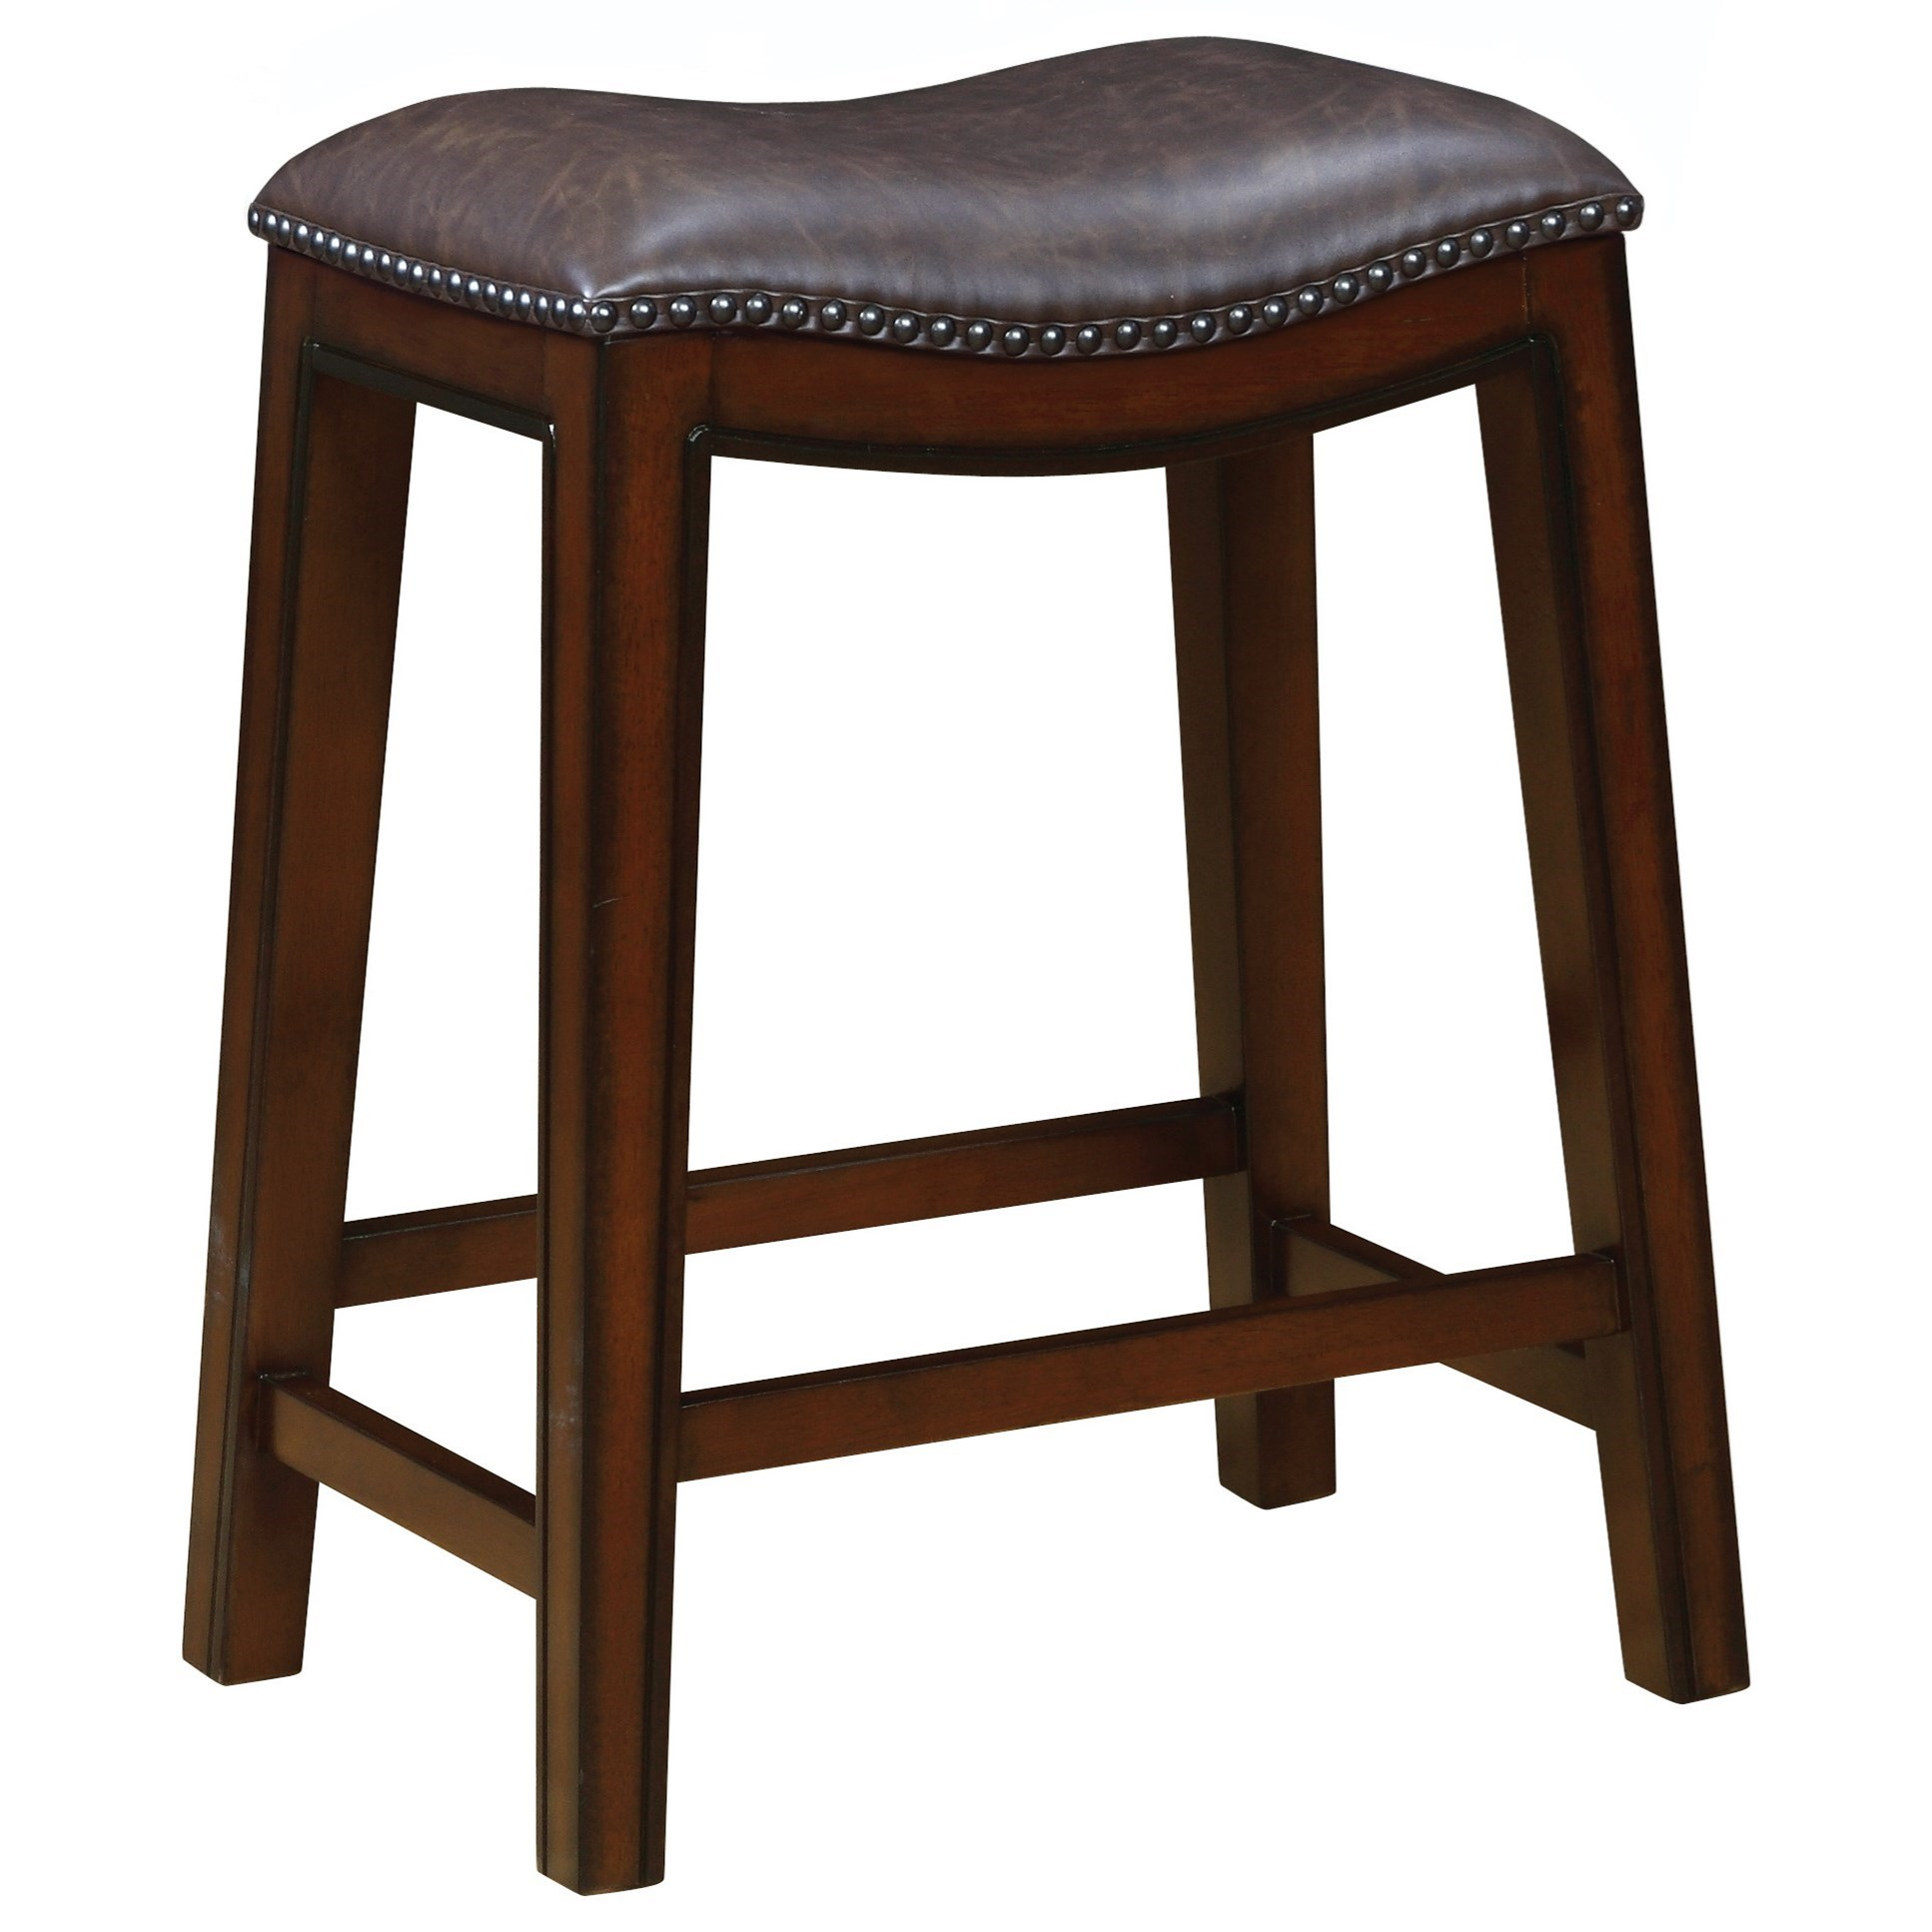 Coaster Dining Chairs and Bar Stools Counter Height Stool - Item Number: 122263